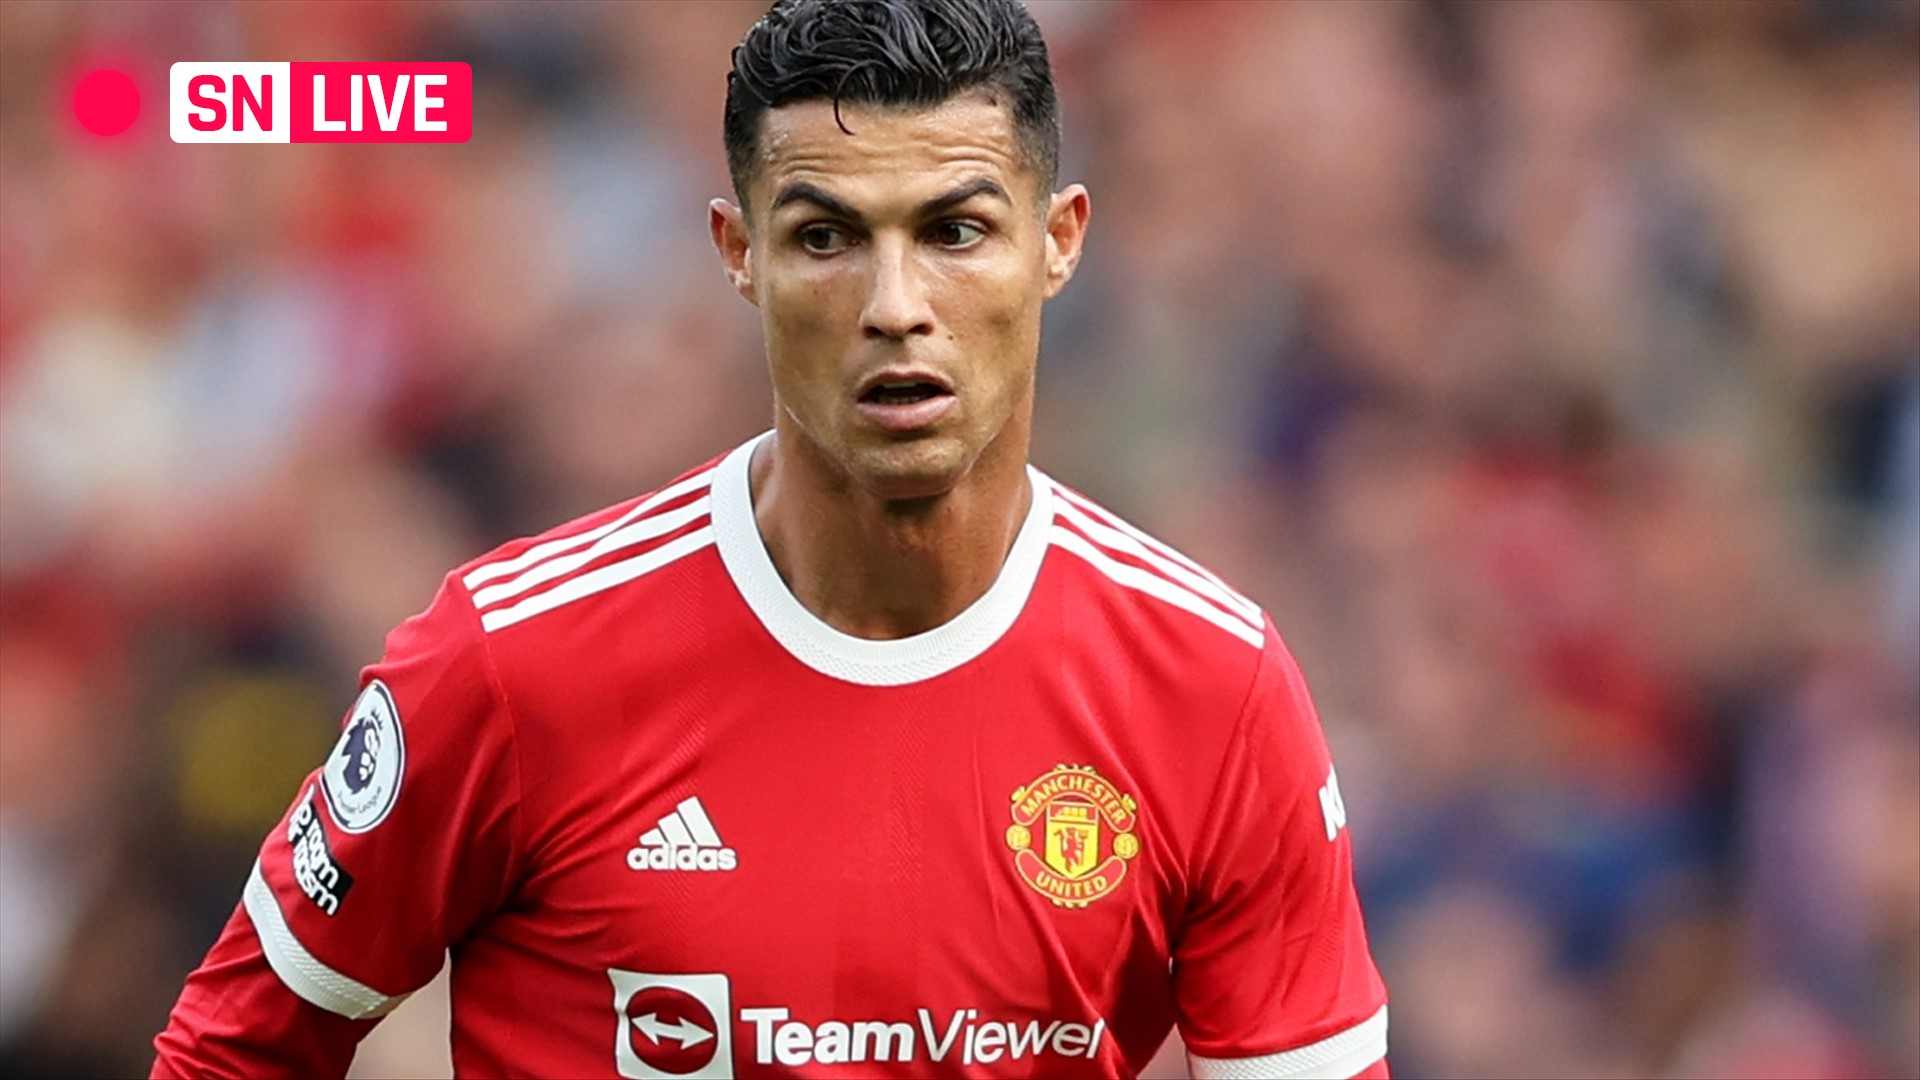 Leicester City vs. Manchester United result: Ronaldo, Red Devils in crisis after 4-2 loss